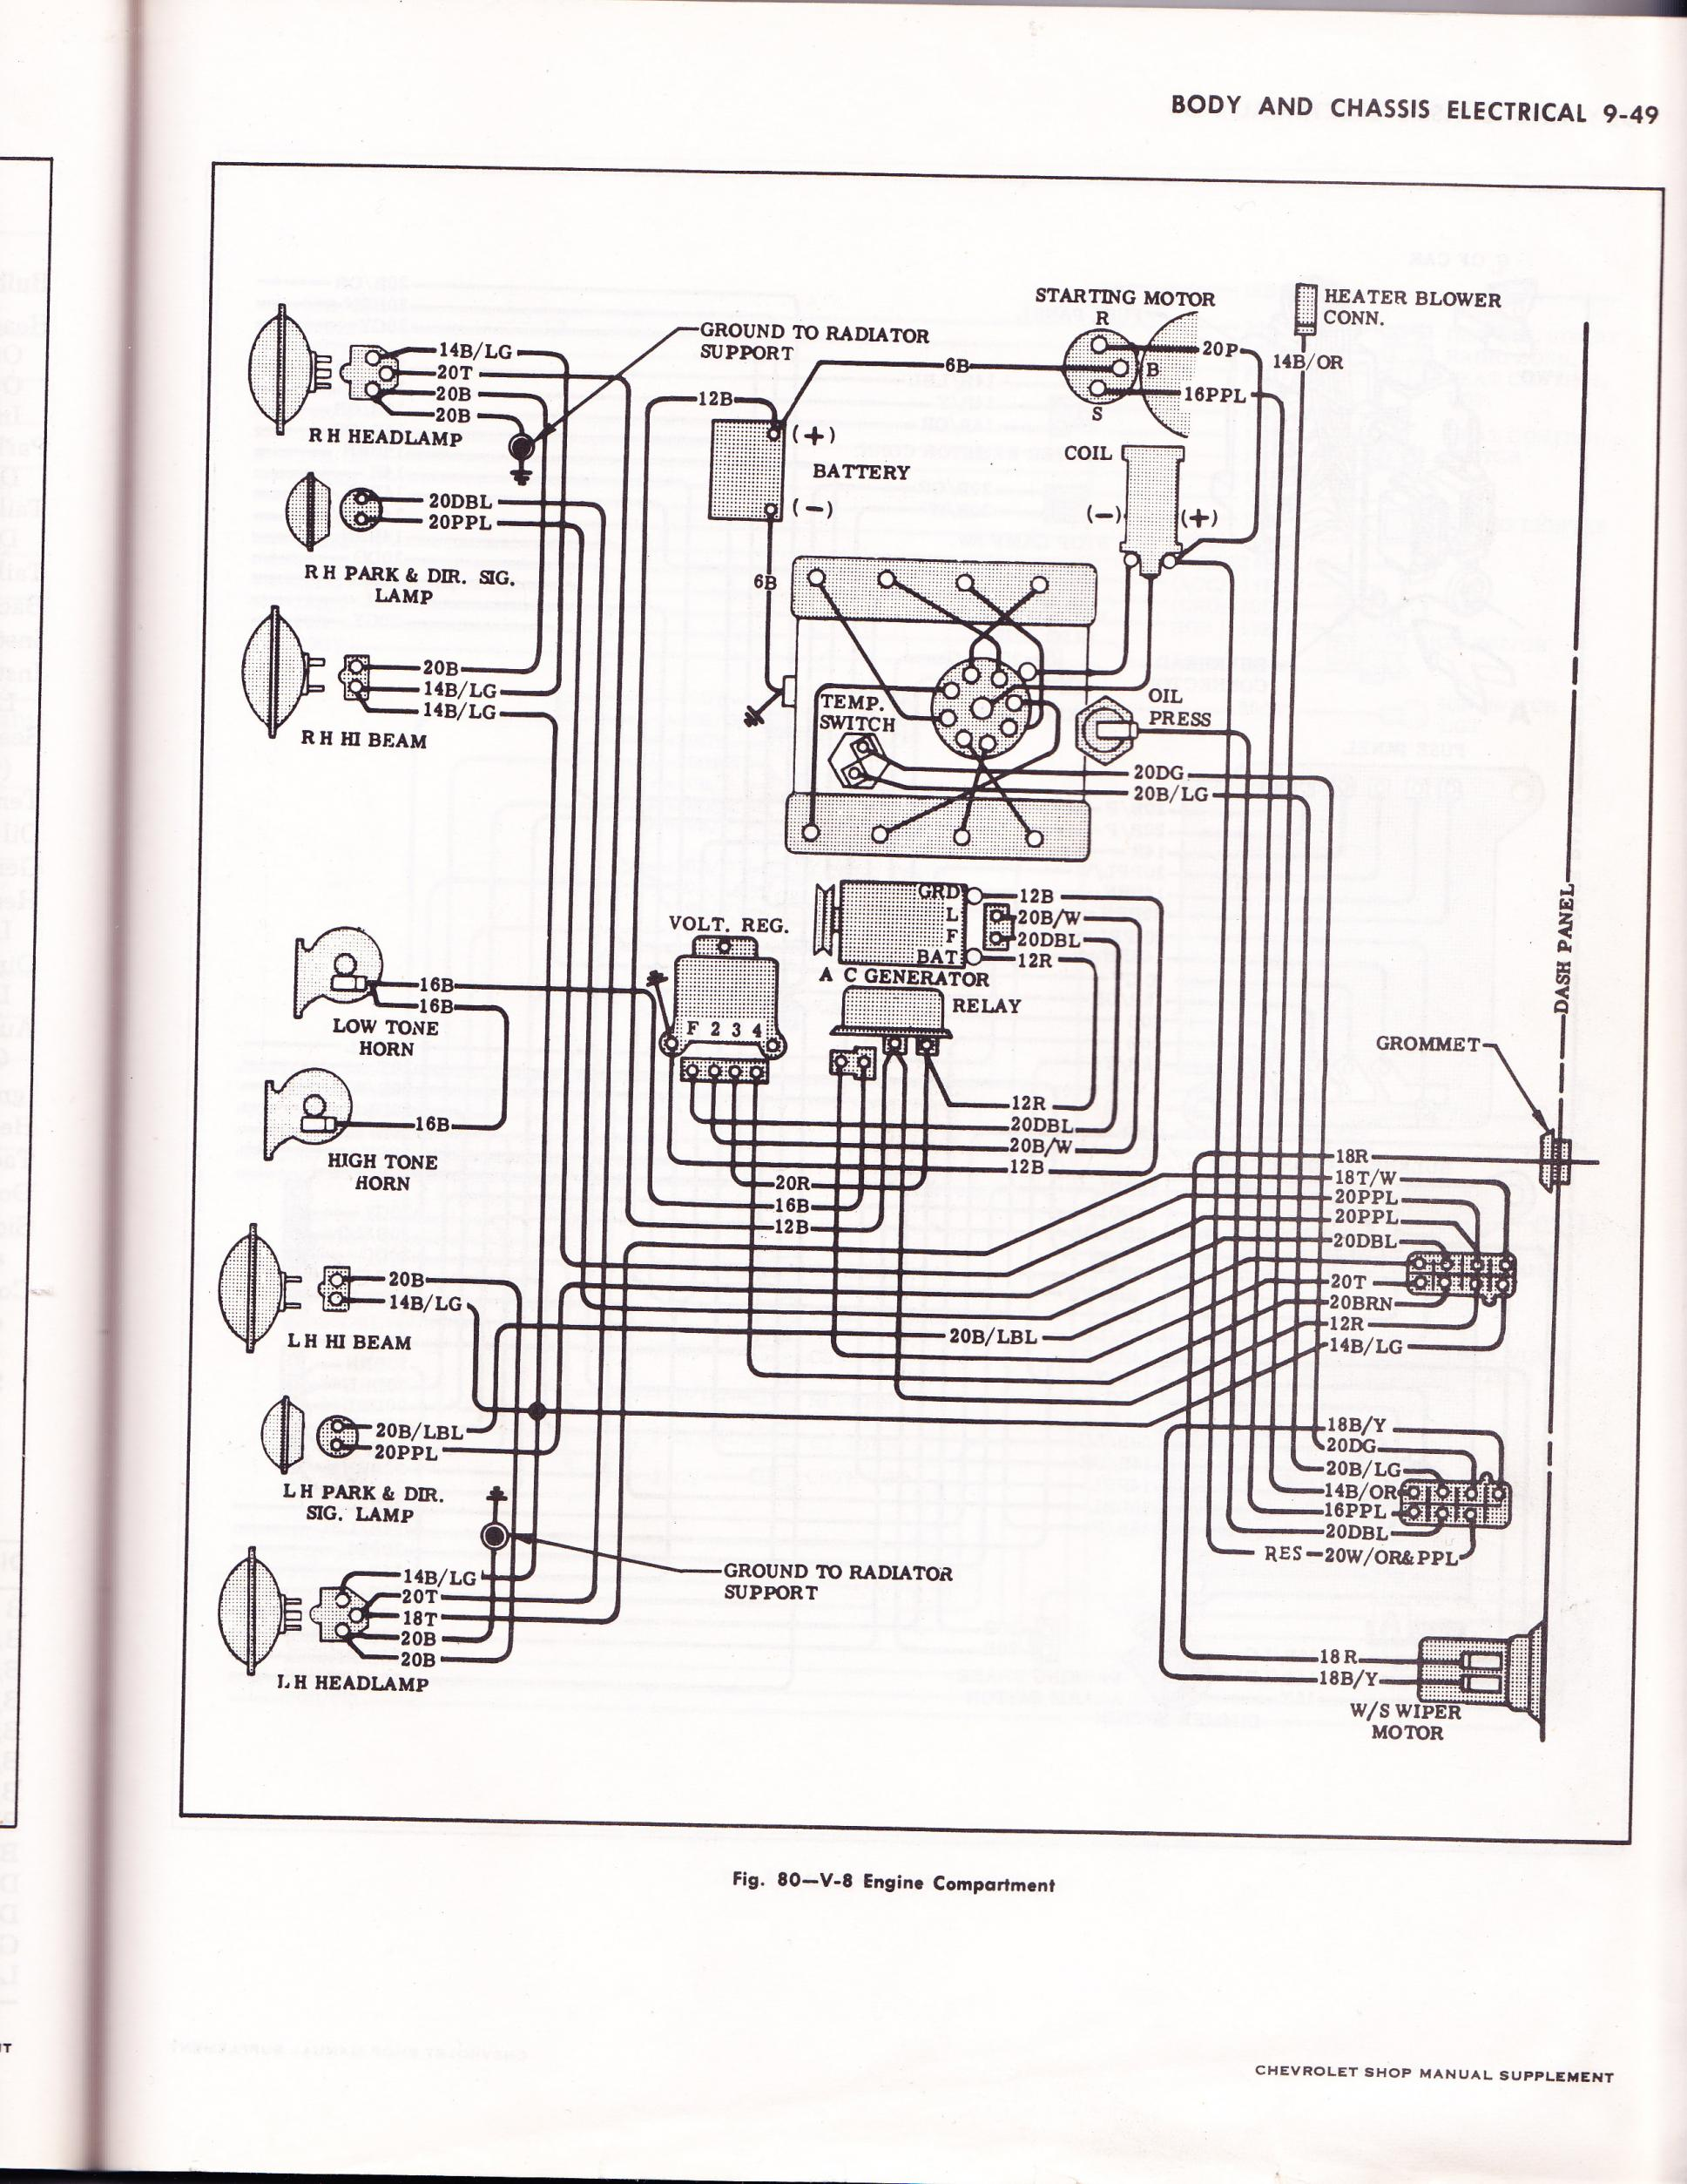 Perfect 64 Impala Wiring Diagram Manual Ornament - Electrical ...